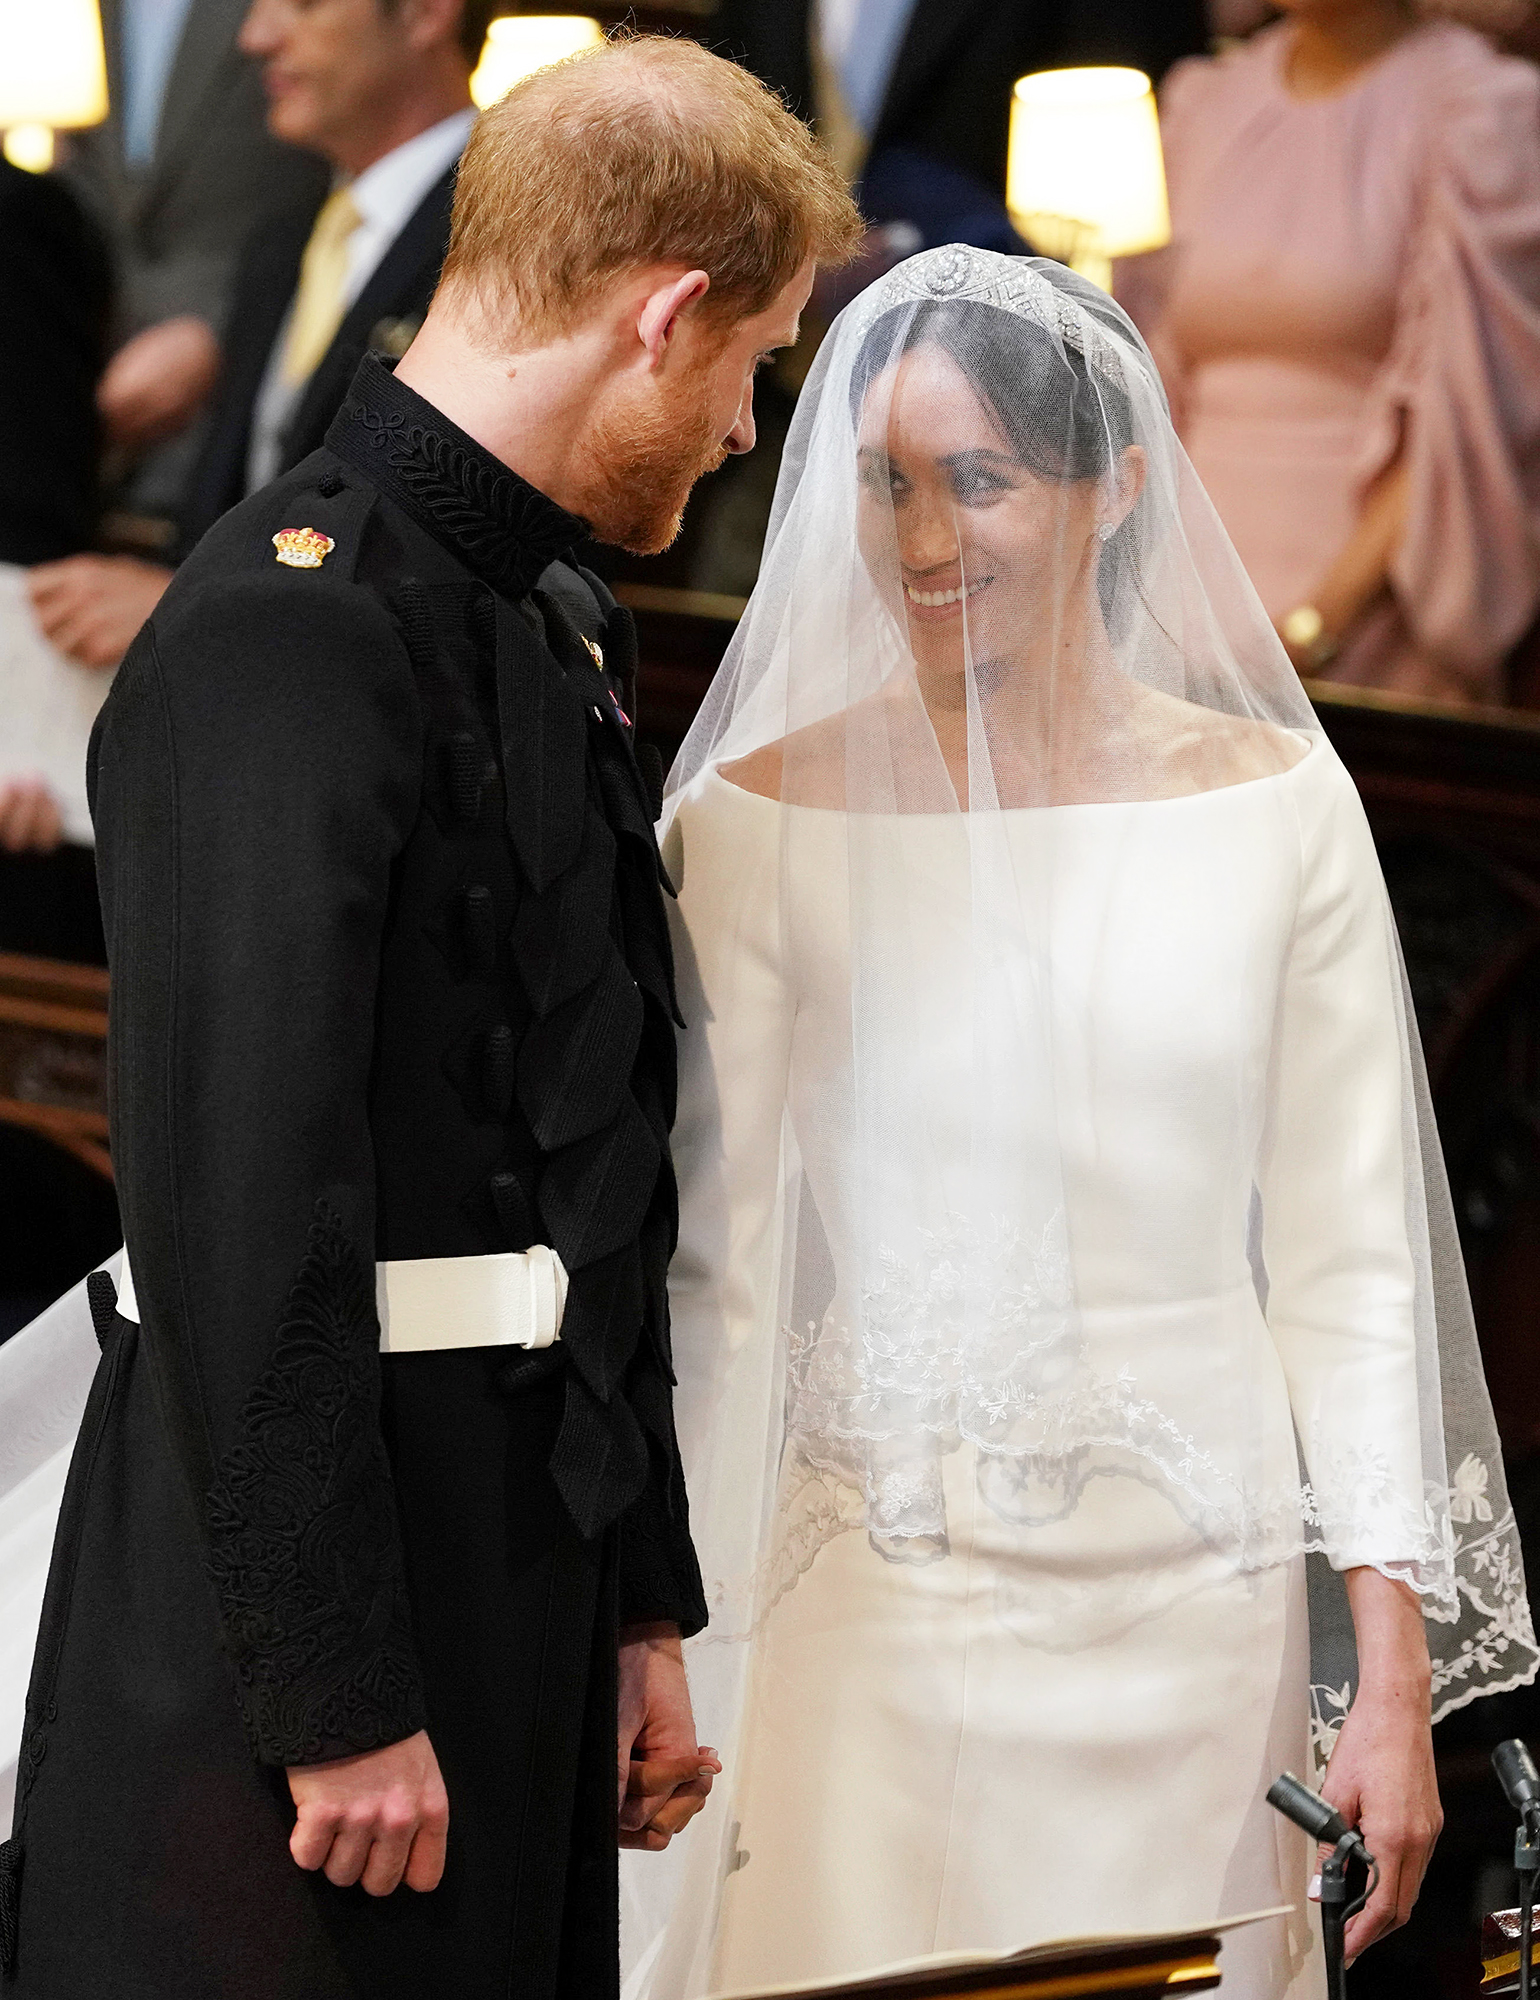 Prince Harry Meghan Markle Royal Wedding So Lucky